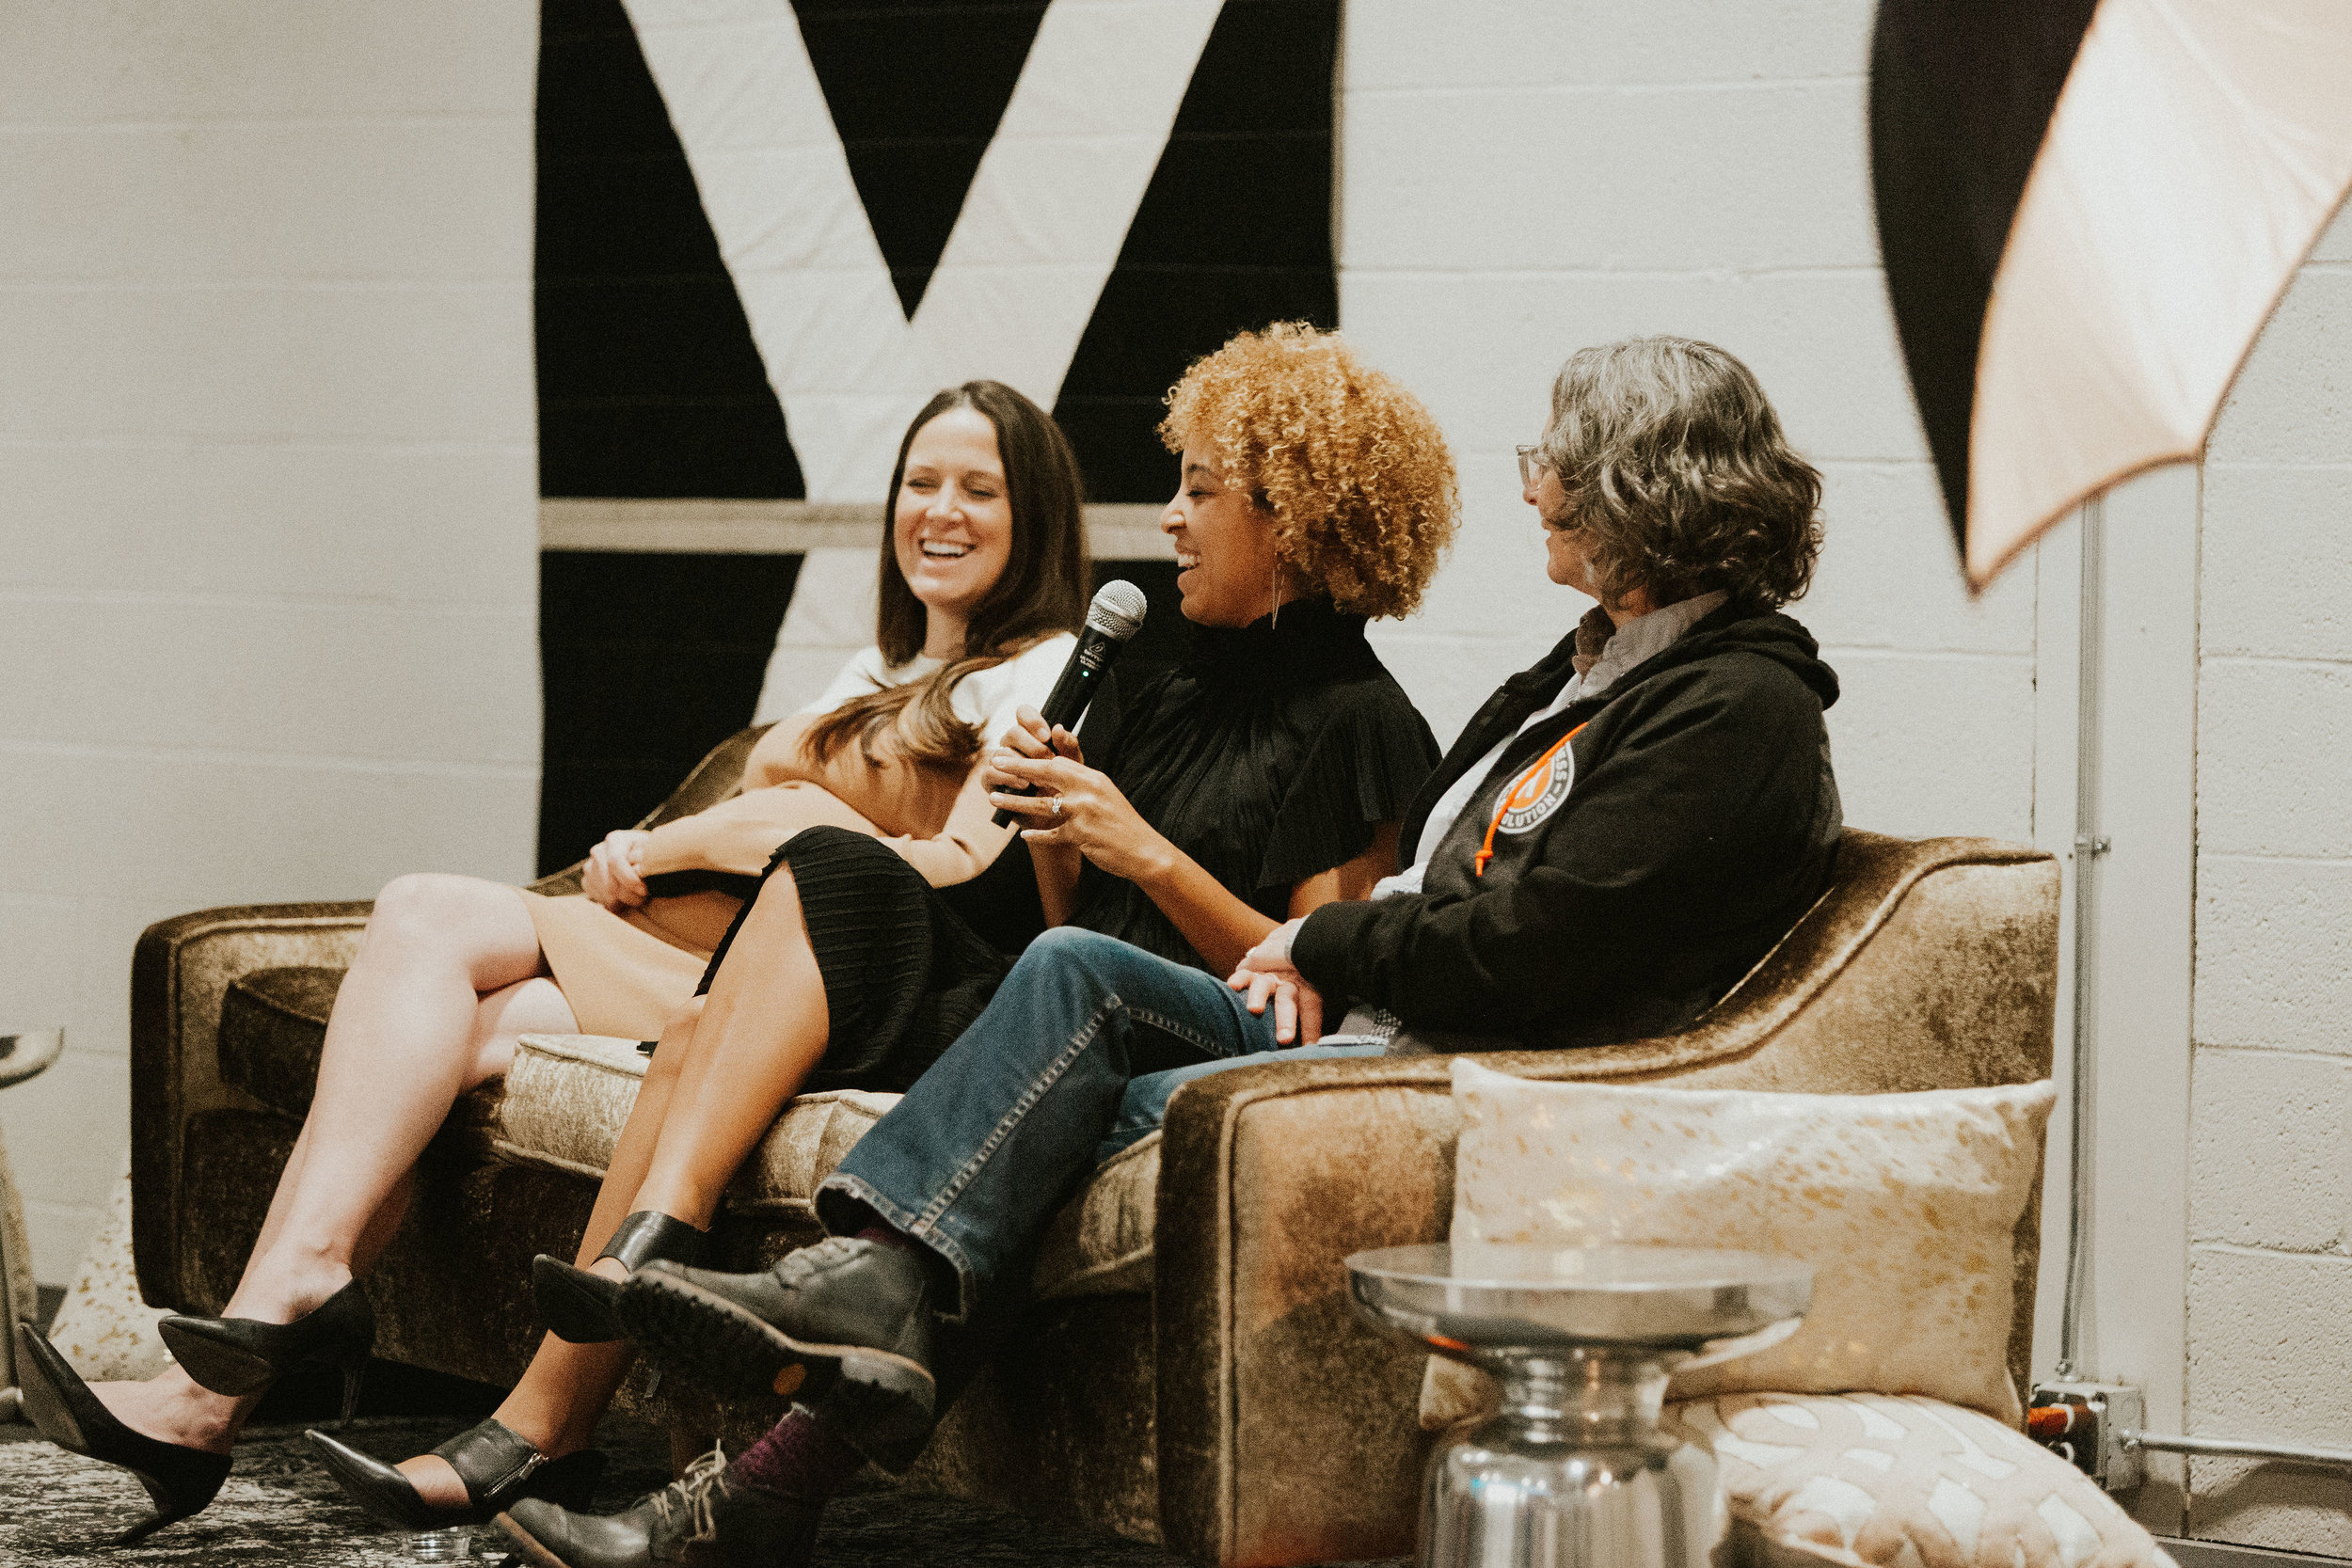 B.A Women's Fall 2018 panelists (left to right): Wynne Reece from The Creative's Counsel, Alex Steinman from The Coven, and Kim Bartmann from Bartmann Group. Photo by  Nicole Haugen .